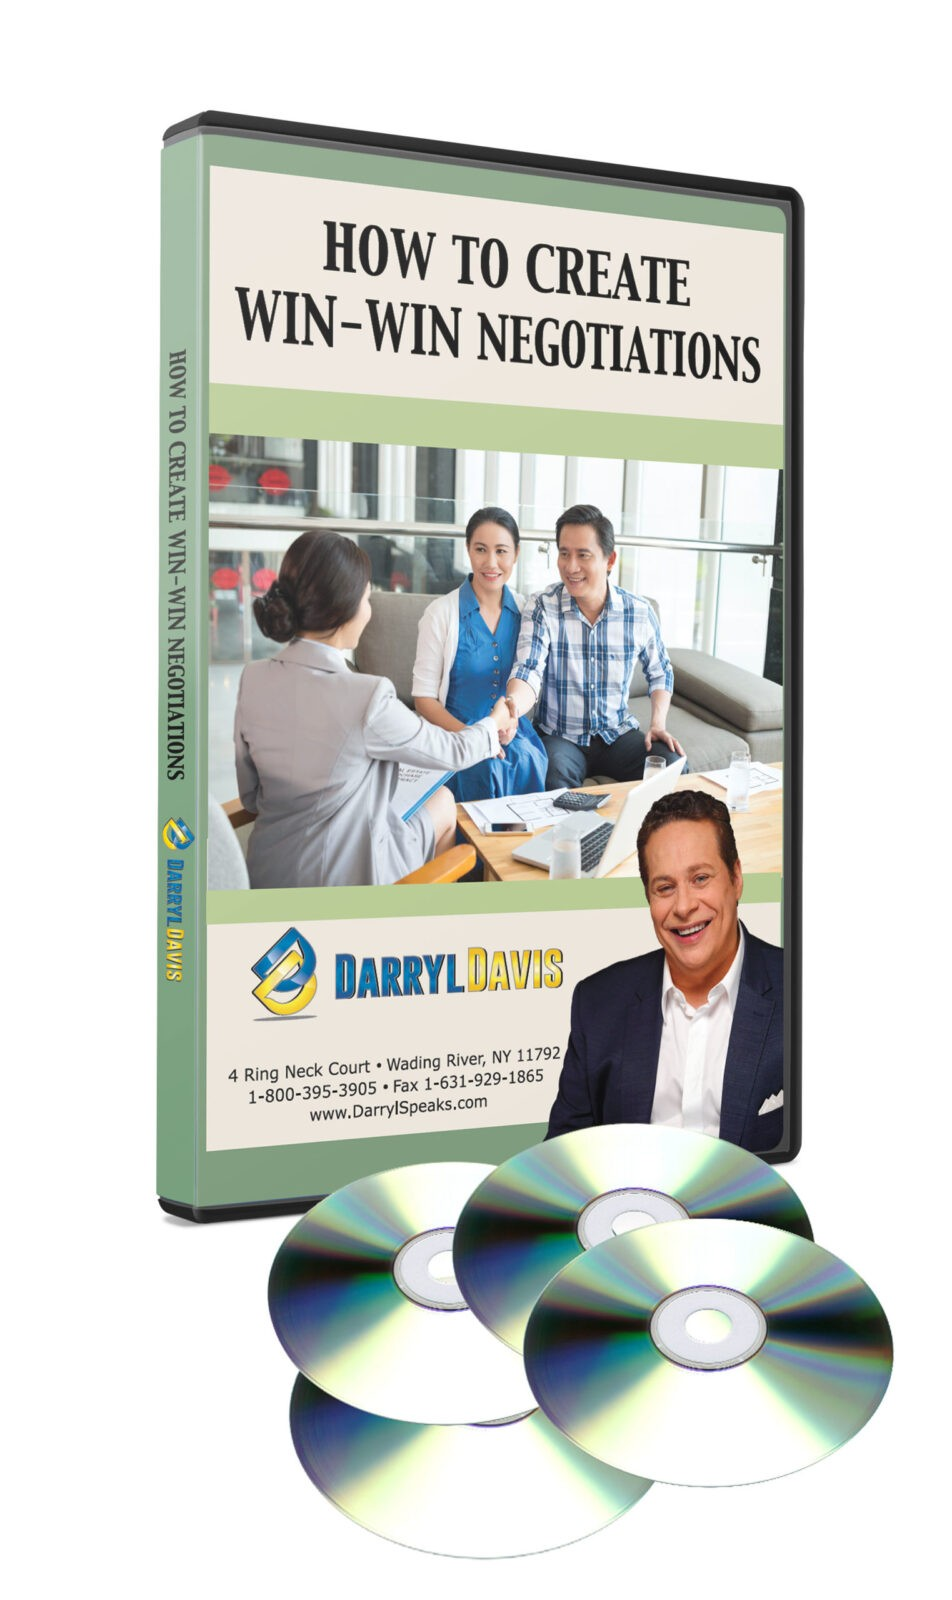 How-To-Create-Win-Win-Negotiations